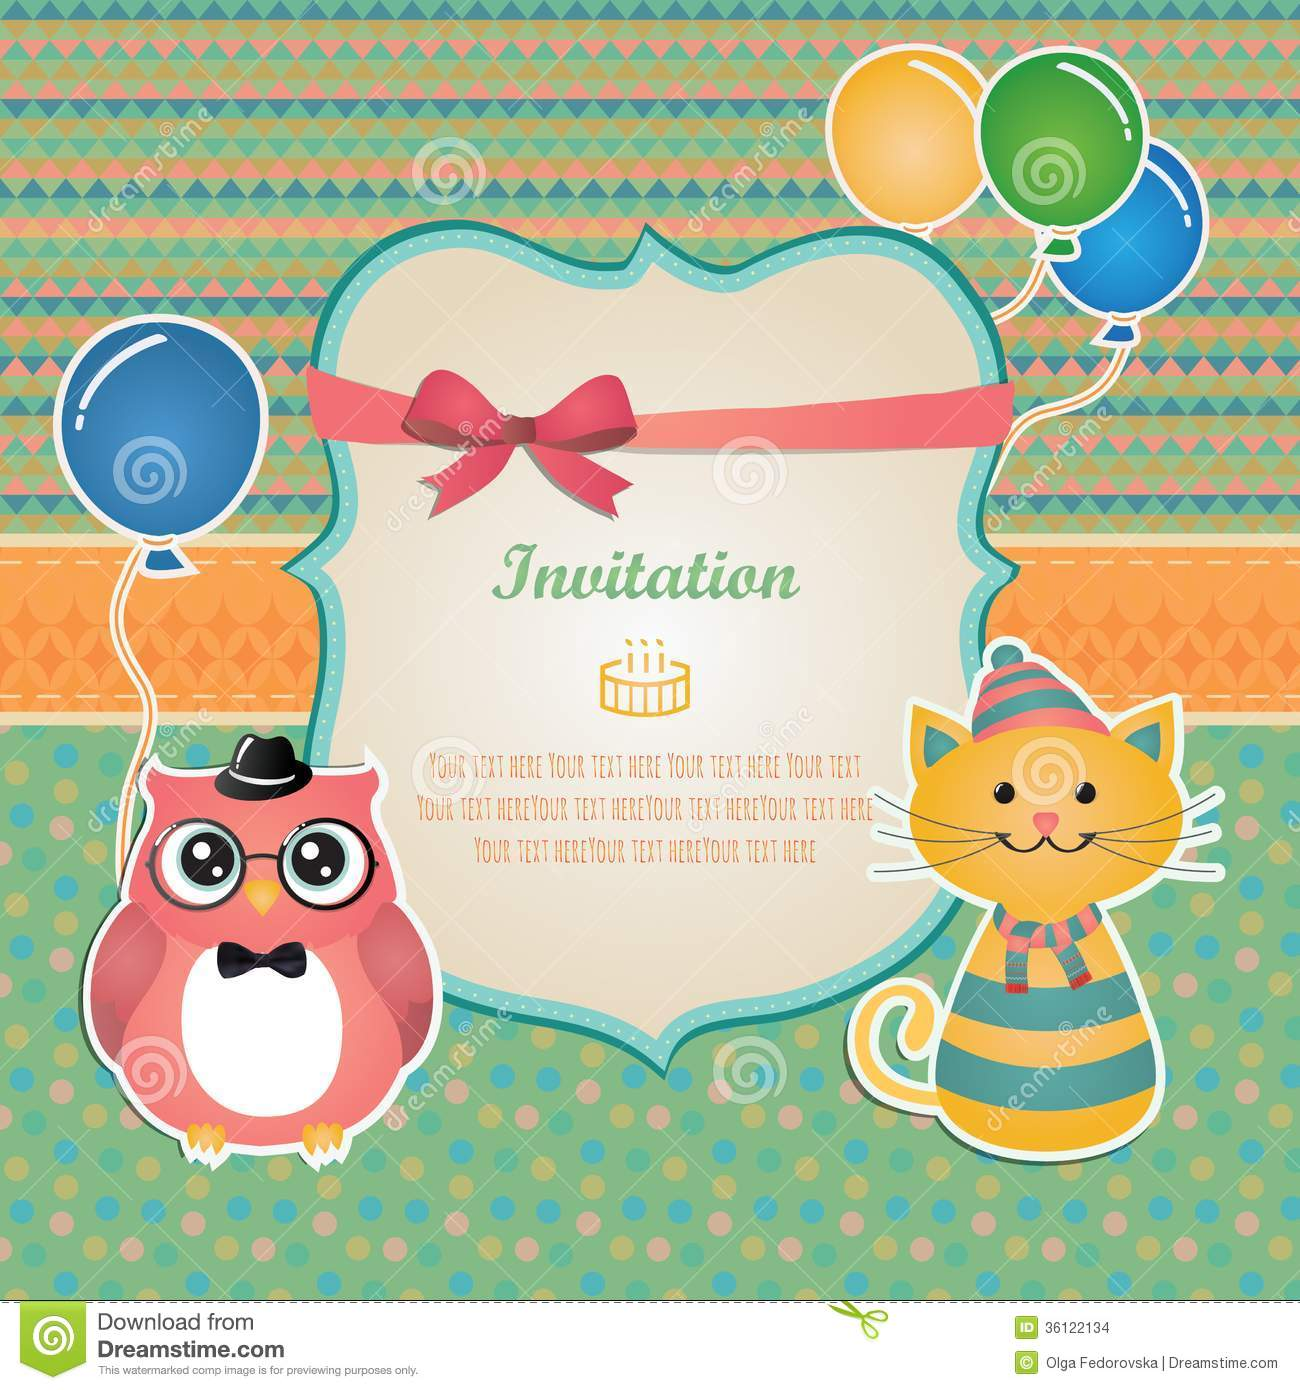 Birthday Invitation Cards - Free online invitation cards for birthday party